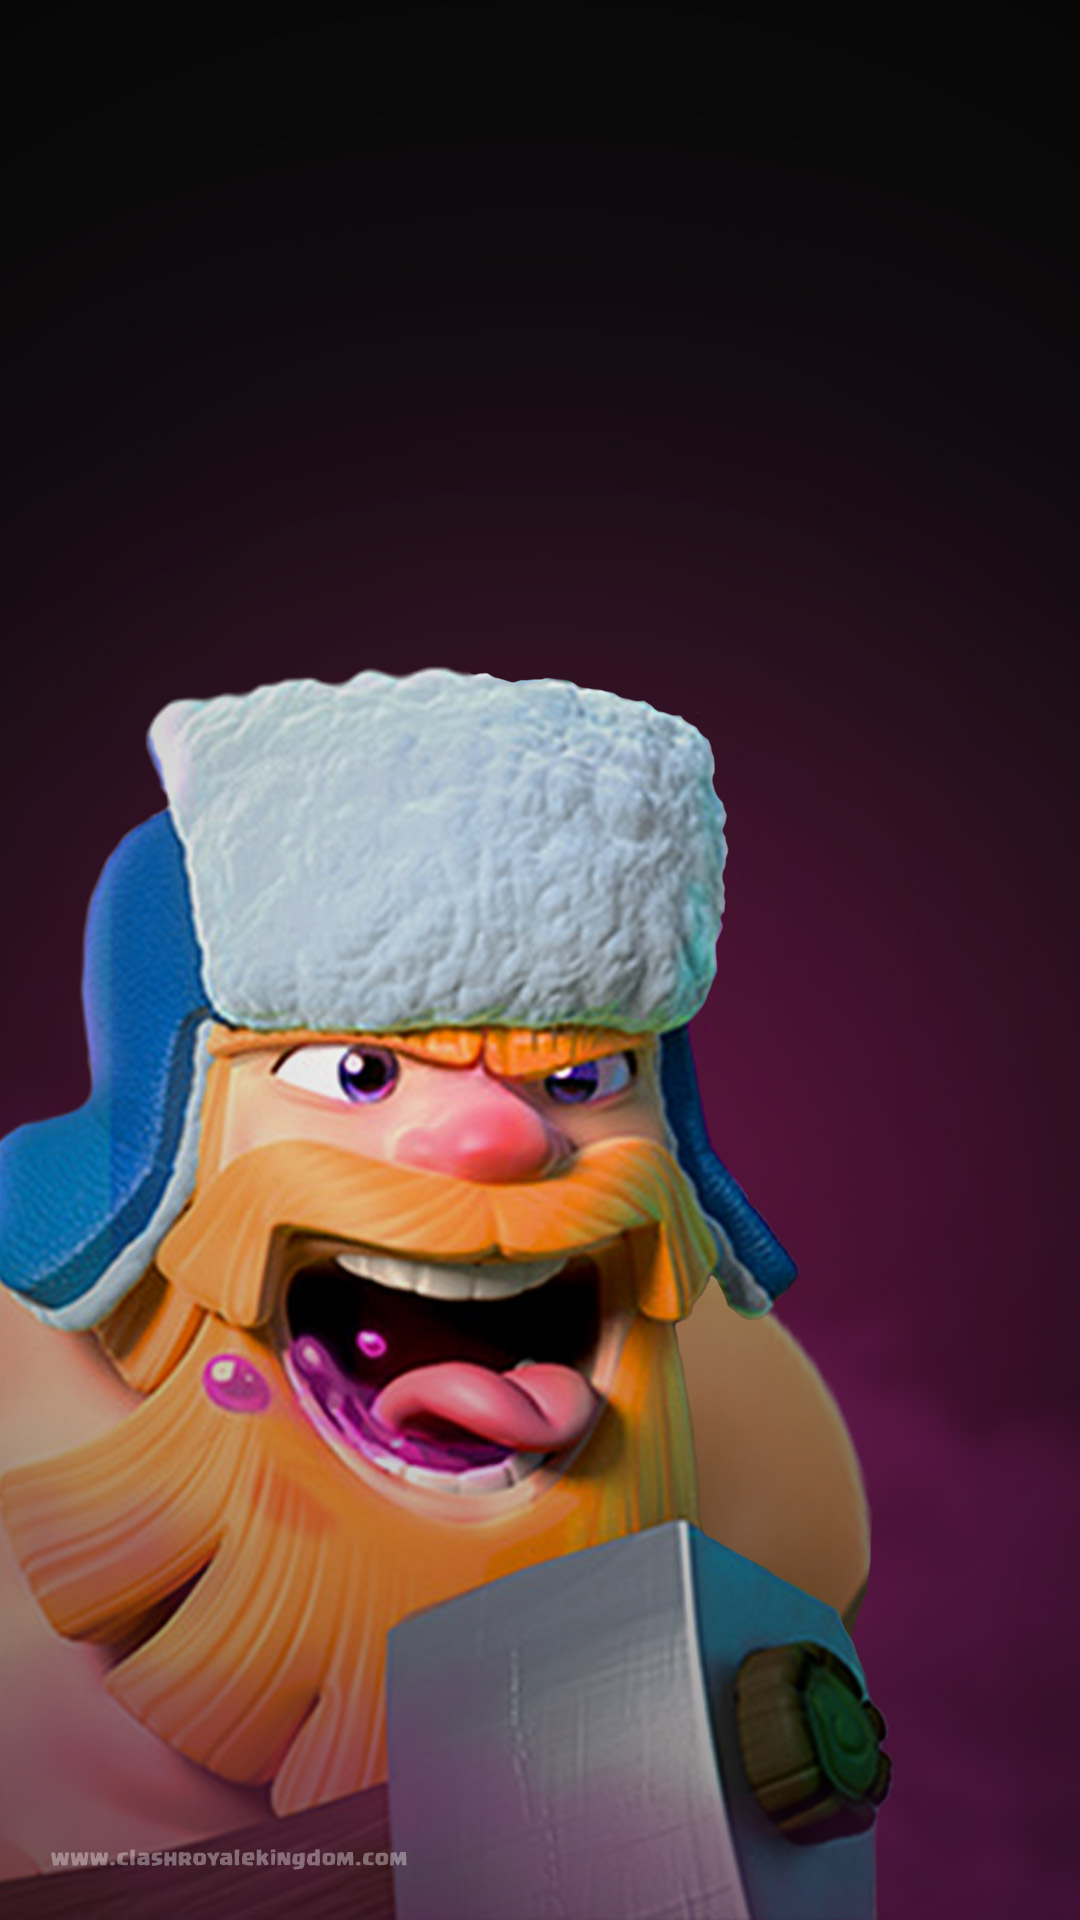 Lumberjack Clash Royale Wallpaper Clash Royale Kingdom